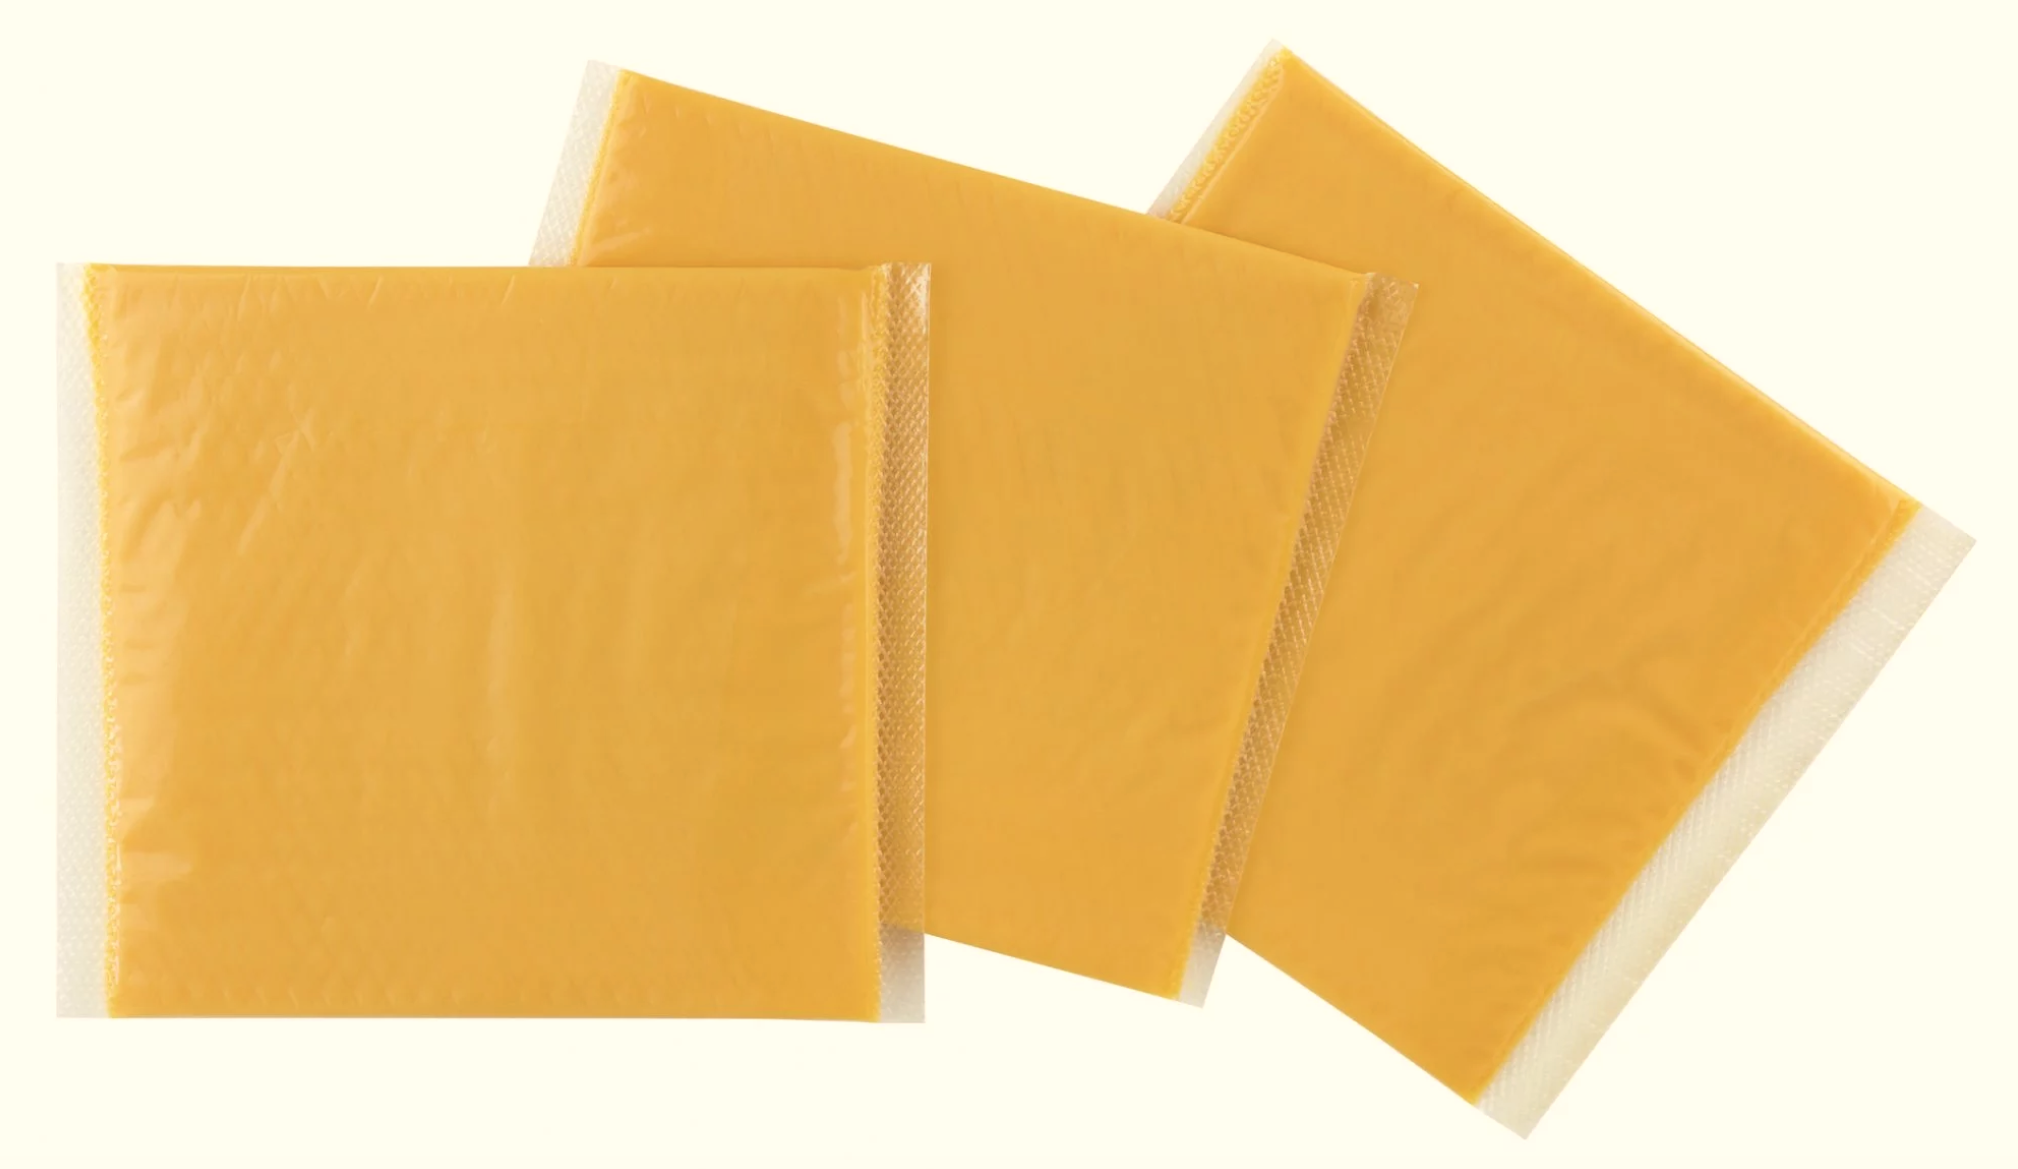 Millennials Are Always Killing Things. This Time It's American Cheese